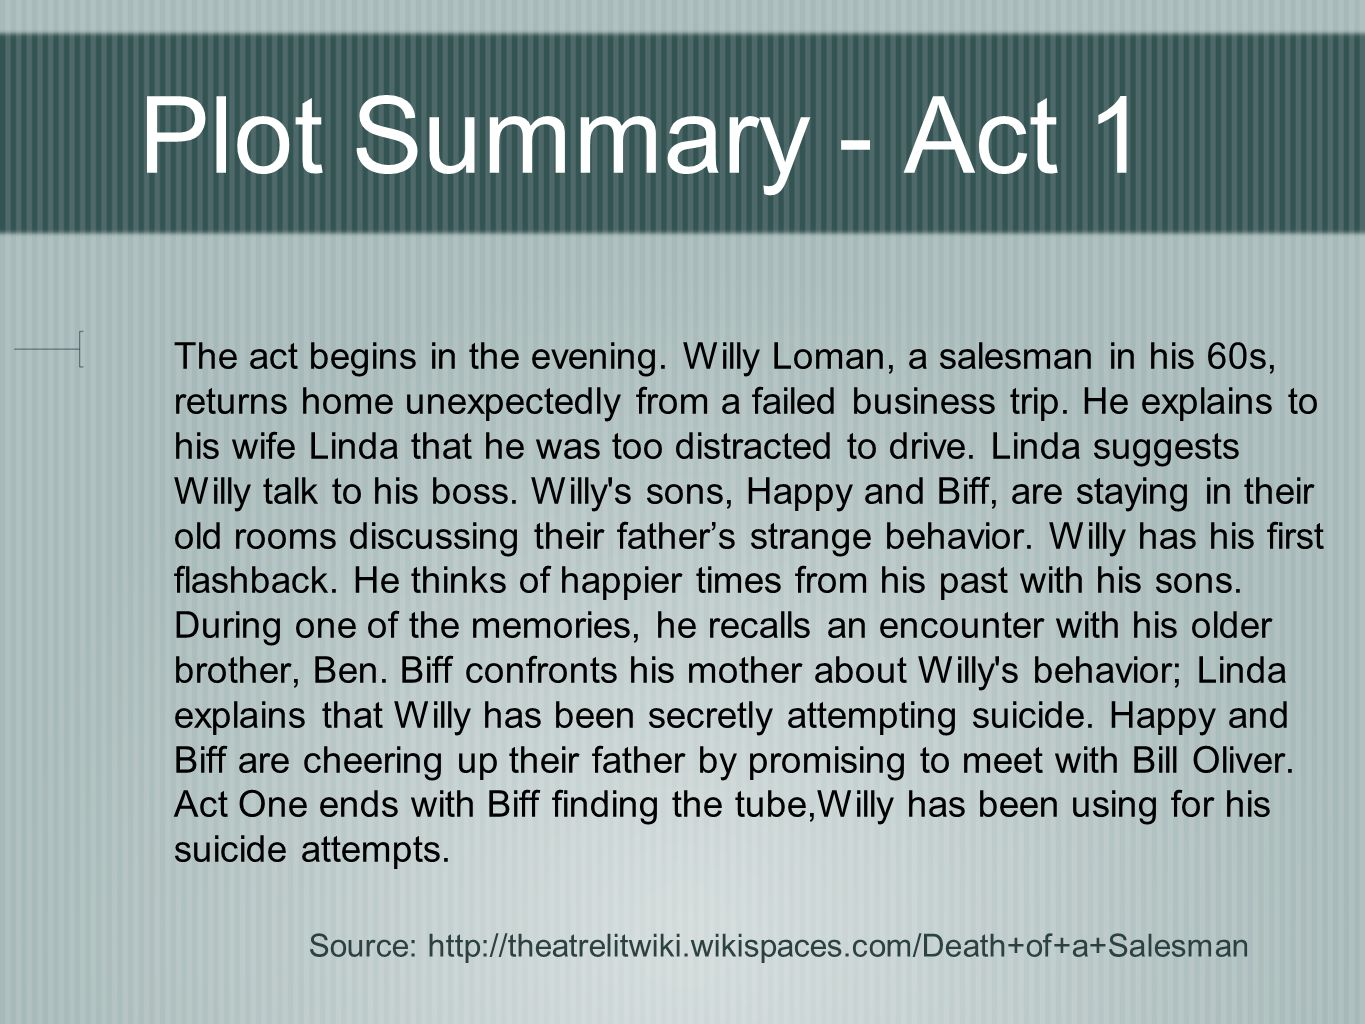 a plot summary of a death of salesman Enotes - death of a salesman detailed study guides typically feature a comprehensive analysis of the work, including an introduction, plot summary, character analysis, discussion of themes, excerpts of published criticism, and q&a.